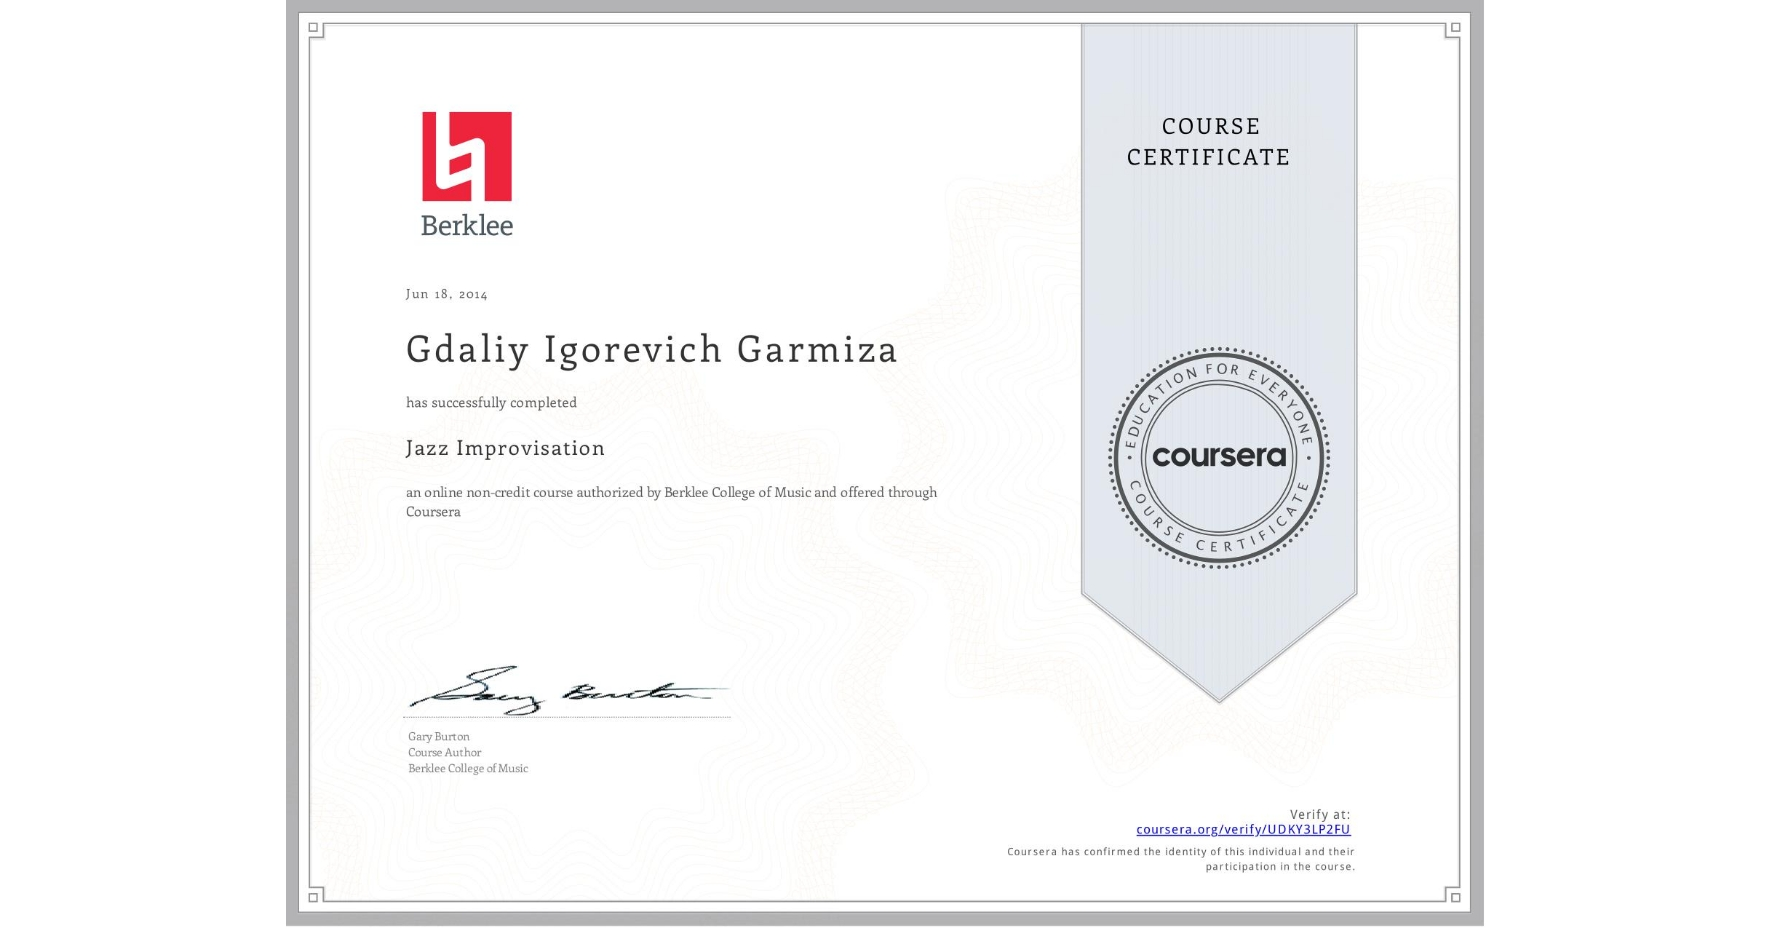 View certificate for Gdaliy Igorevich Garmiza, Jazz Improvisation, an online non-credit course authorized by Berklee College of Music and offered through Coursera